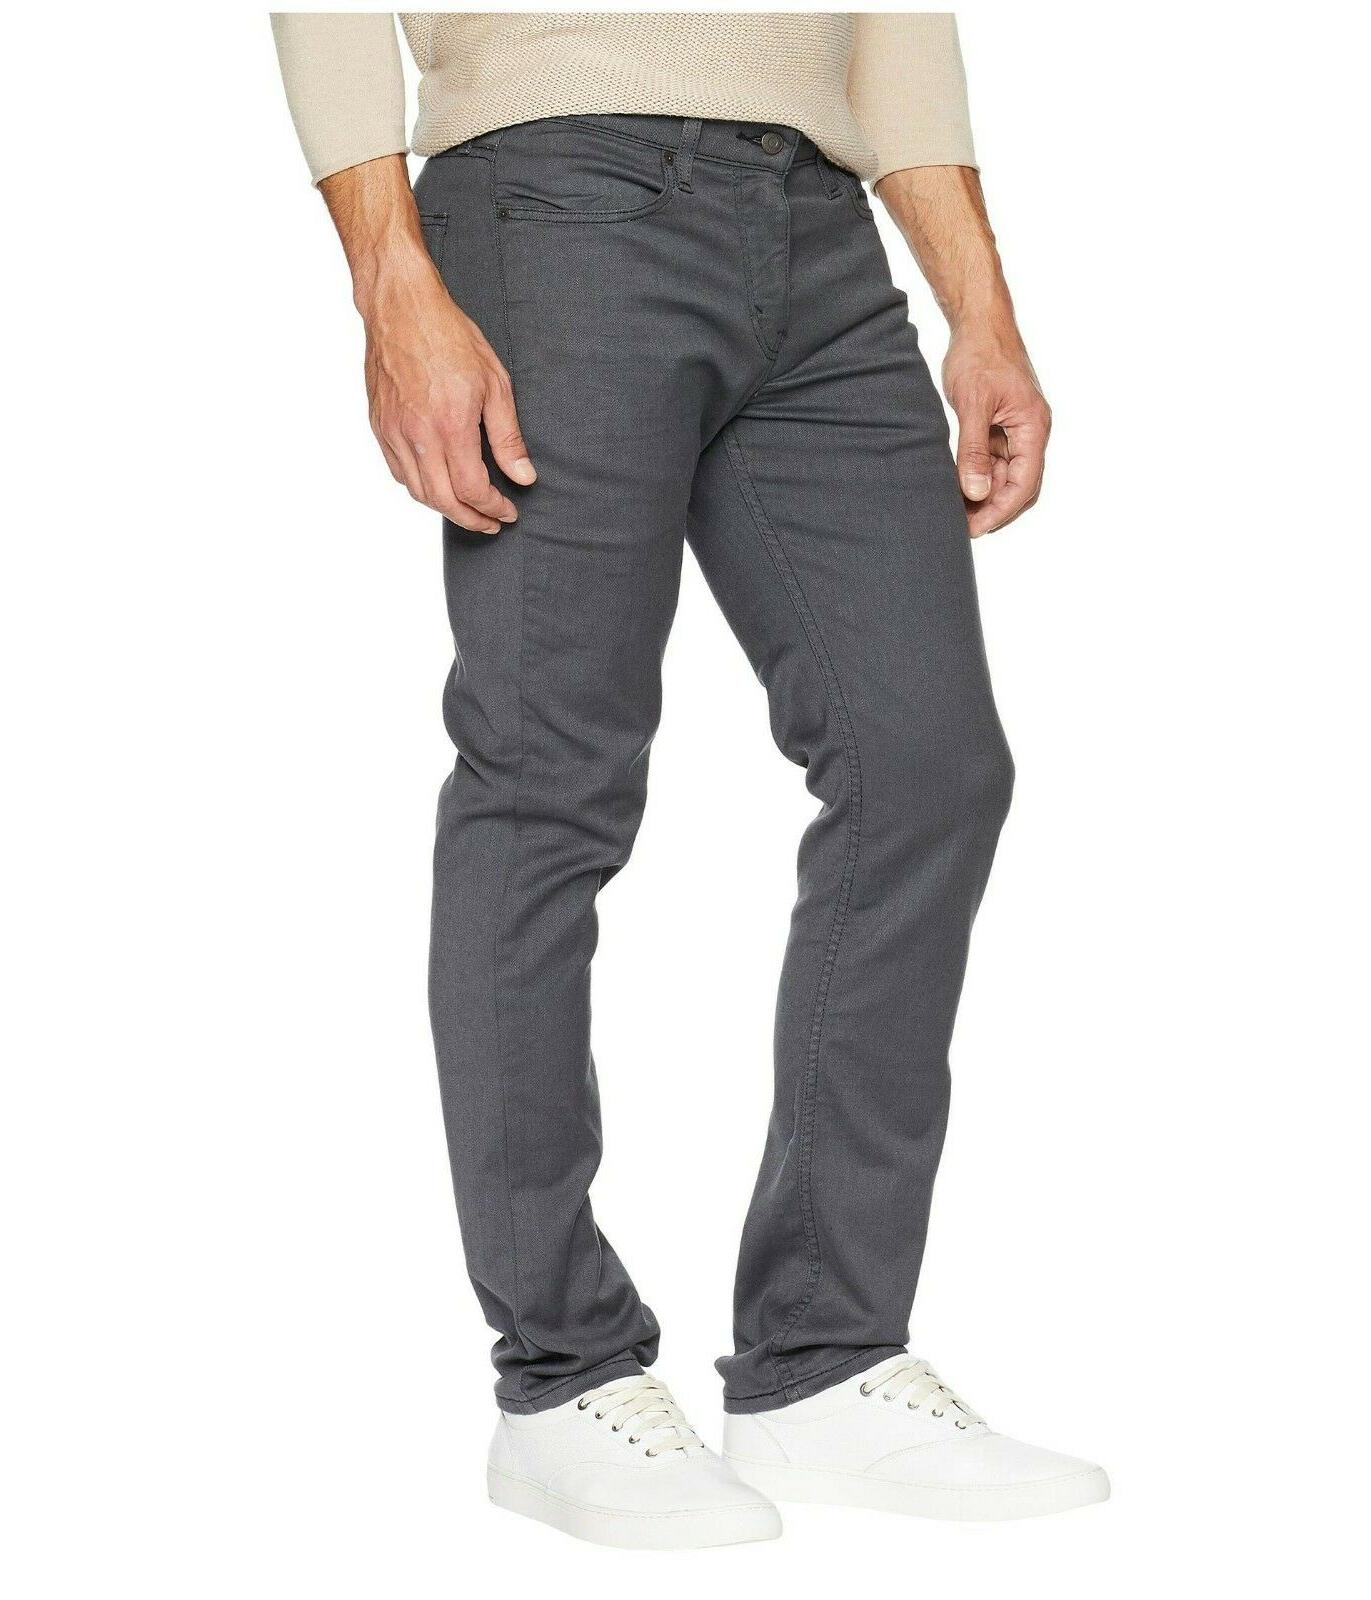 New Levi's 511 Slim Fit Performance stretch Jeans trouser